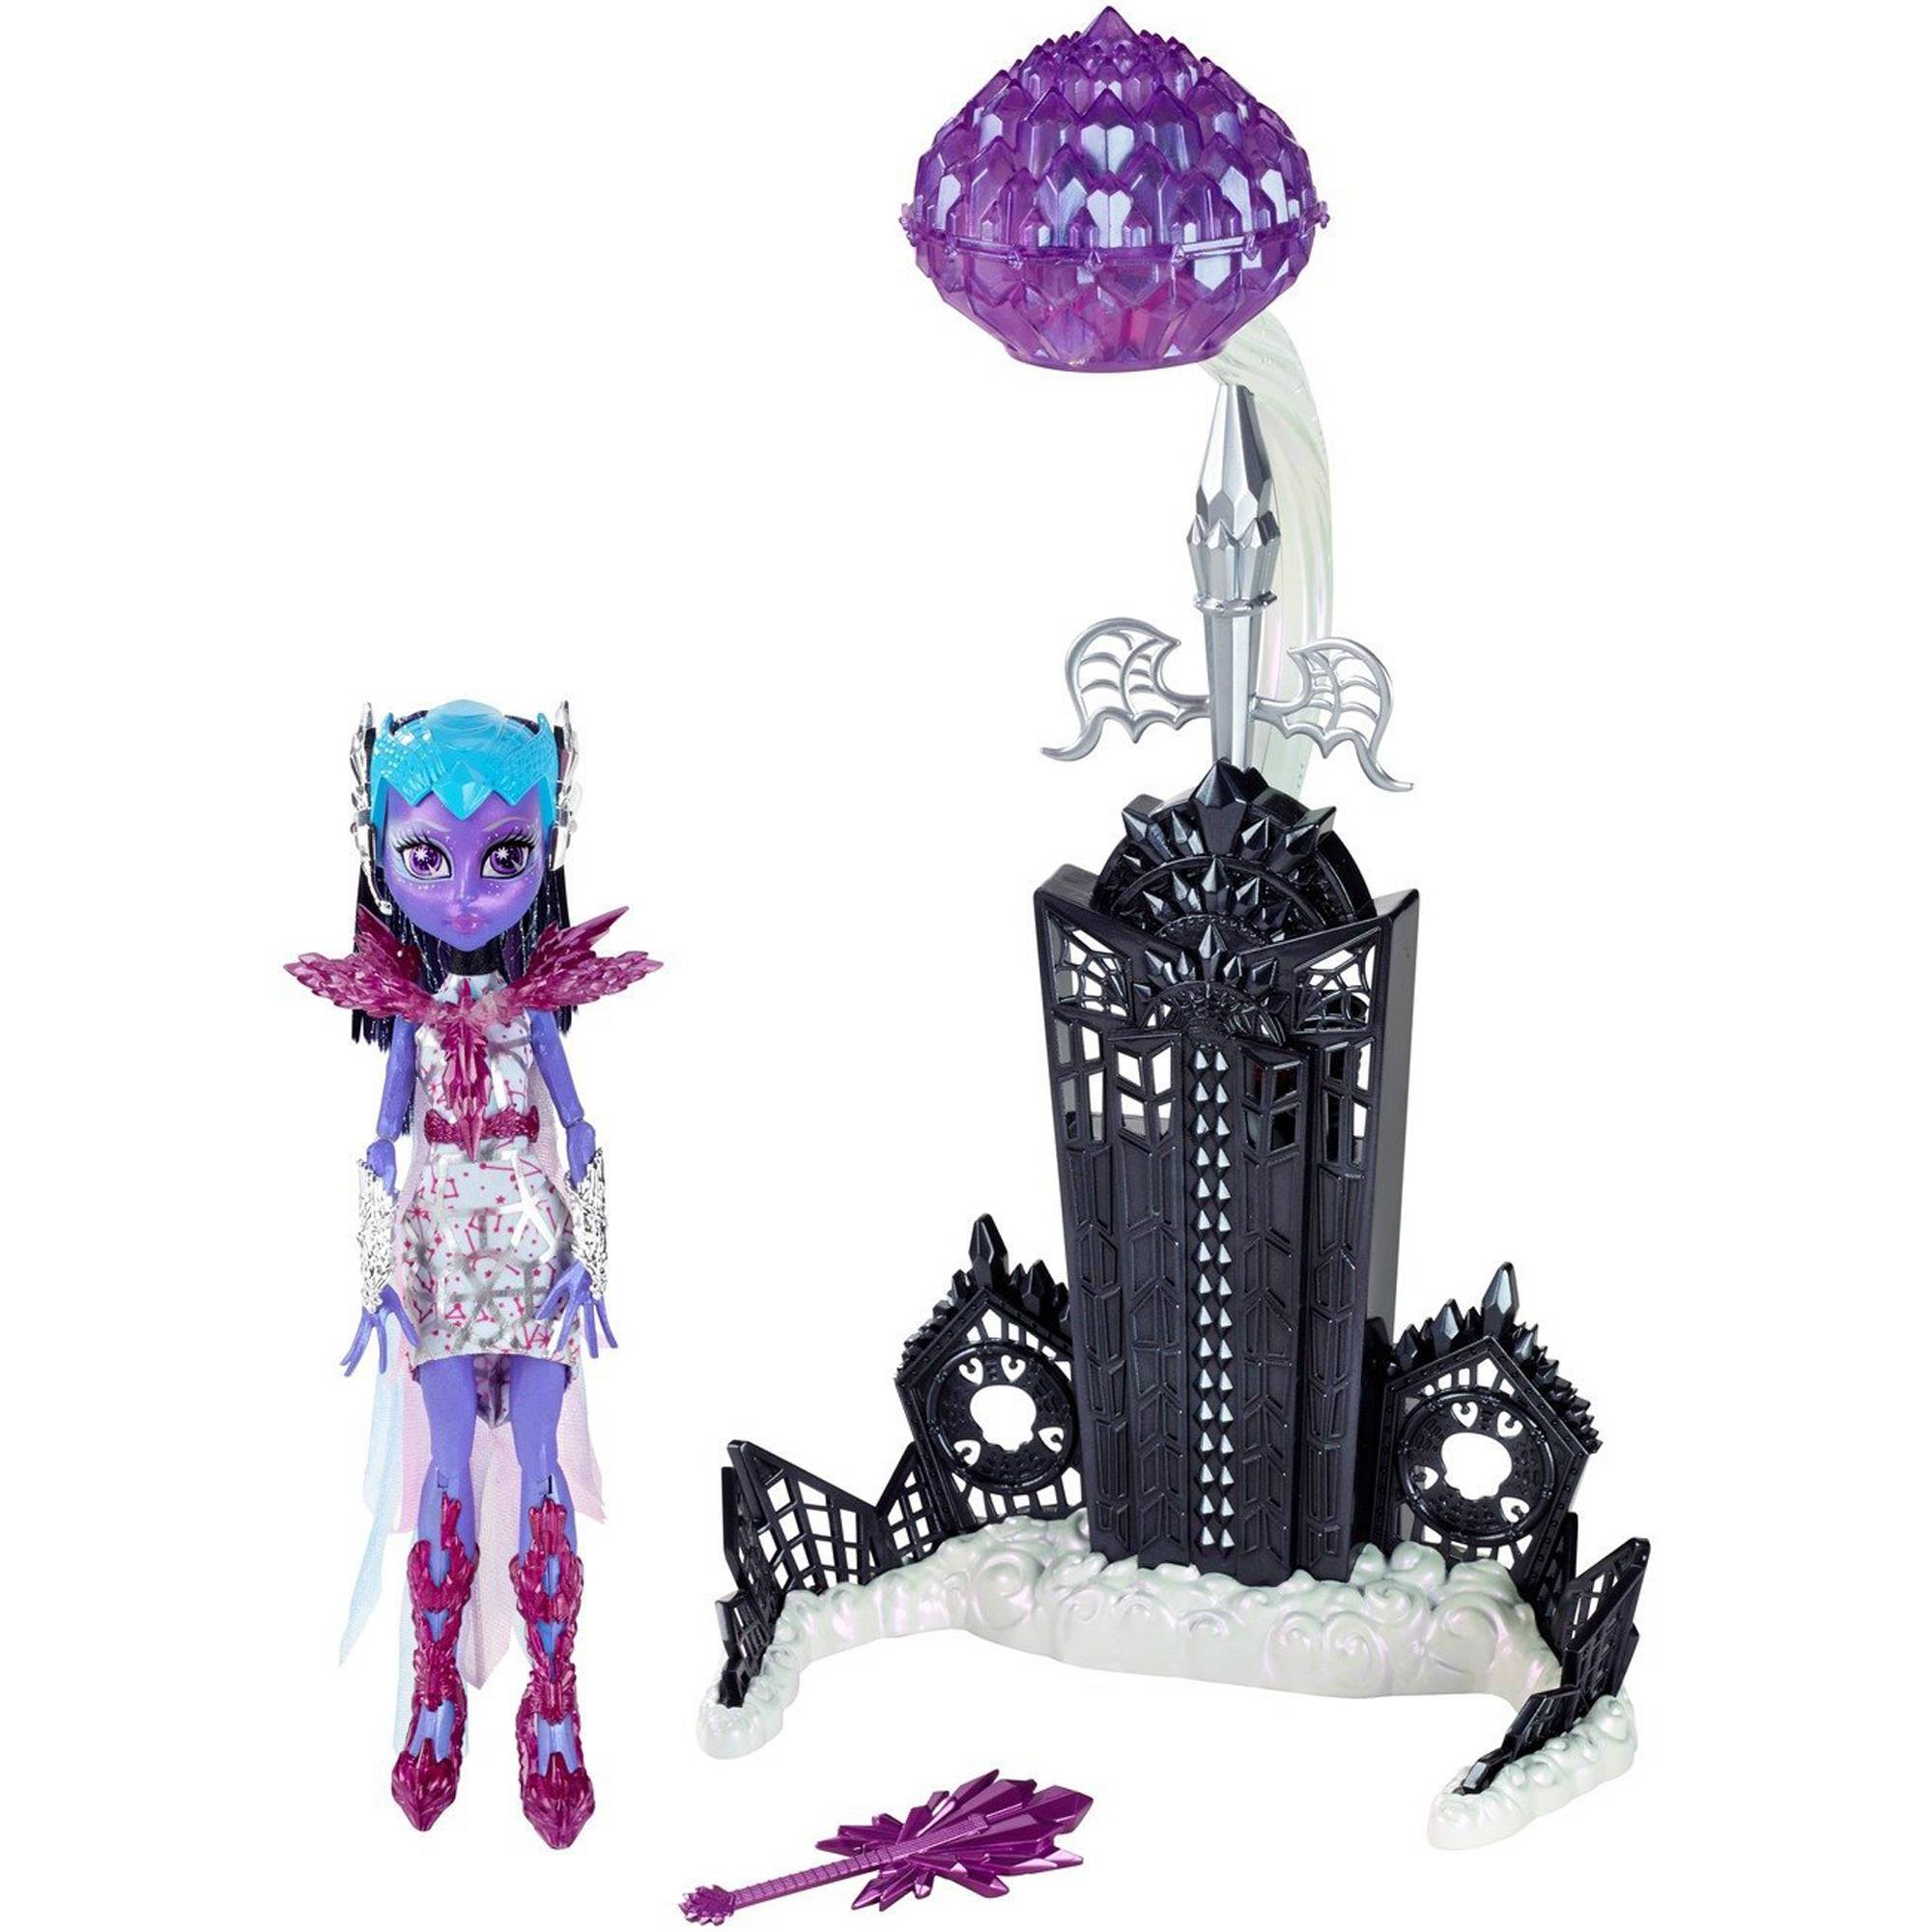 Monster High Boo York, Boo York Floatation Station Astranova Doll + Accy by MATTEL INC.